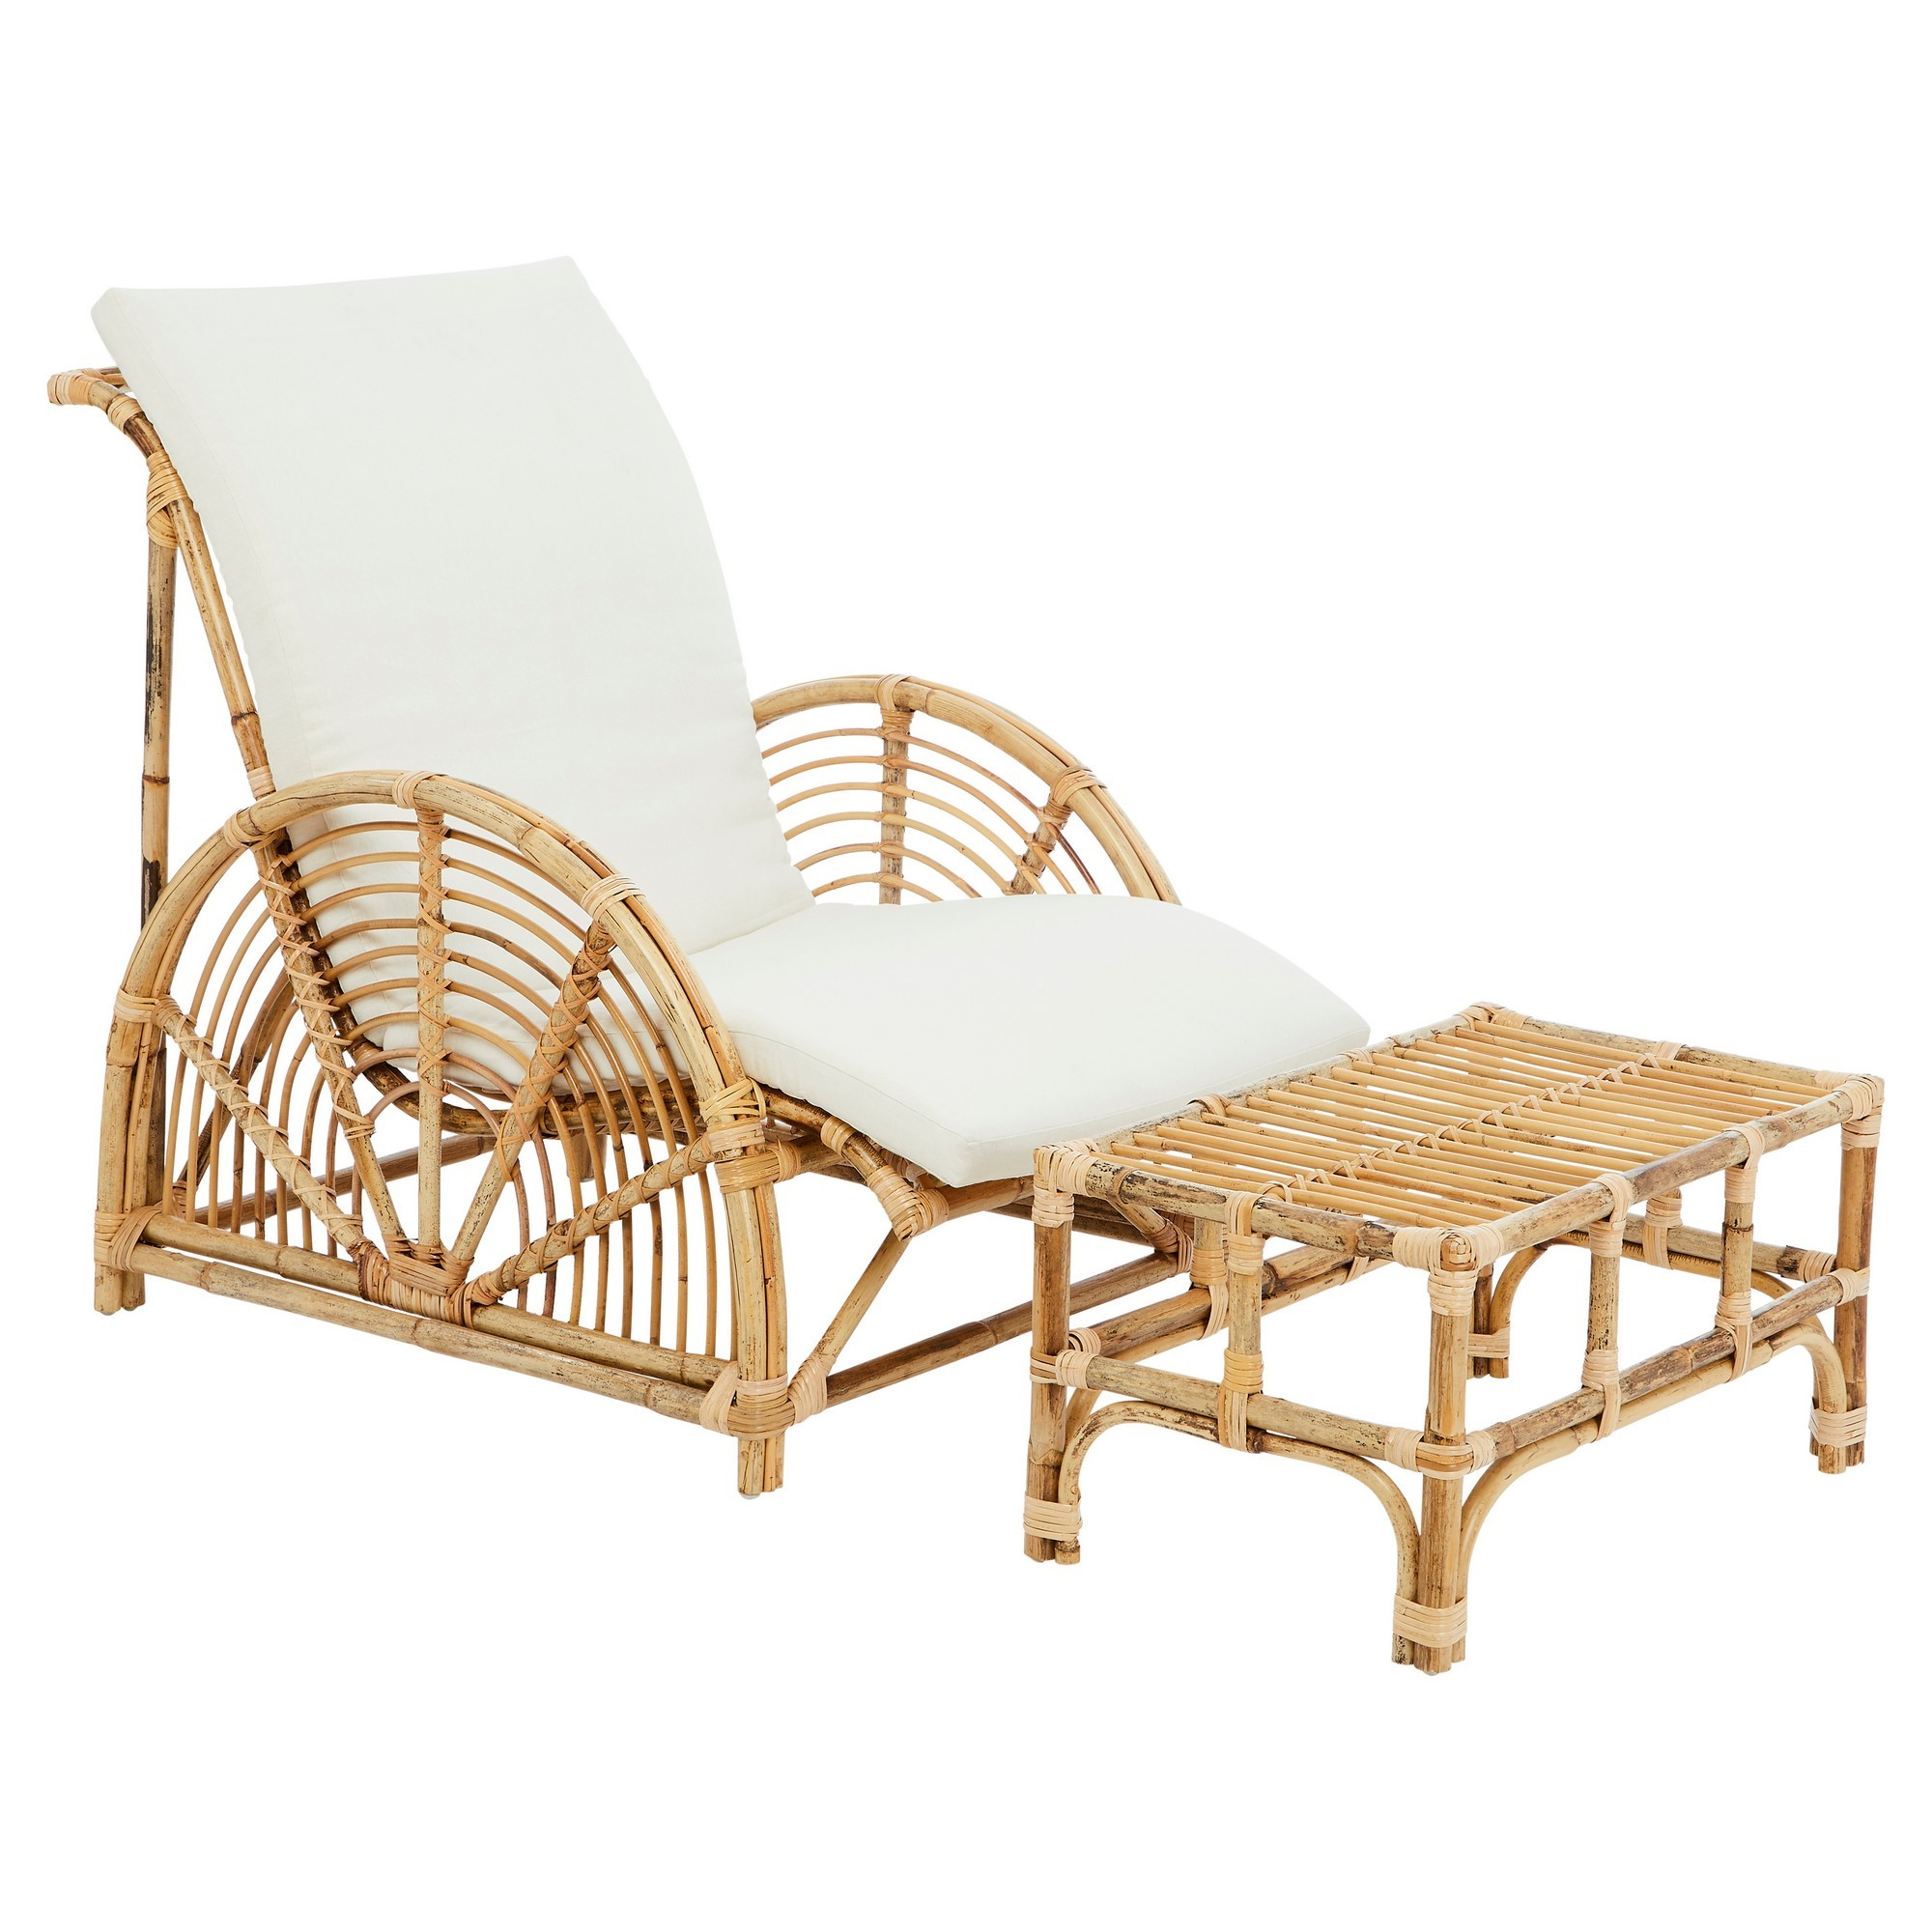 Havana Rattan Lounge Chair & Footstool Set, Natural